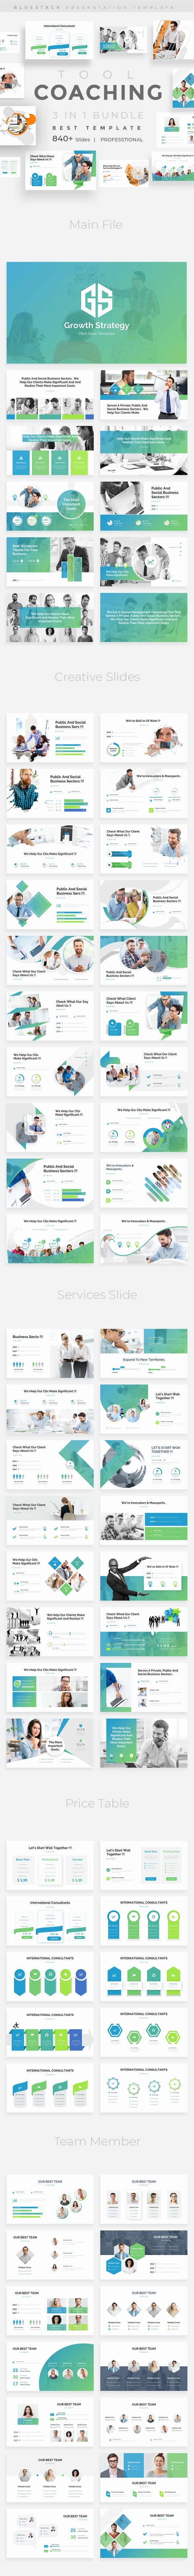 Coaching Tool 3 in 1 Pitch Deck Bundle Powerpoint Template - Business PowerPoint Templates